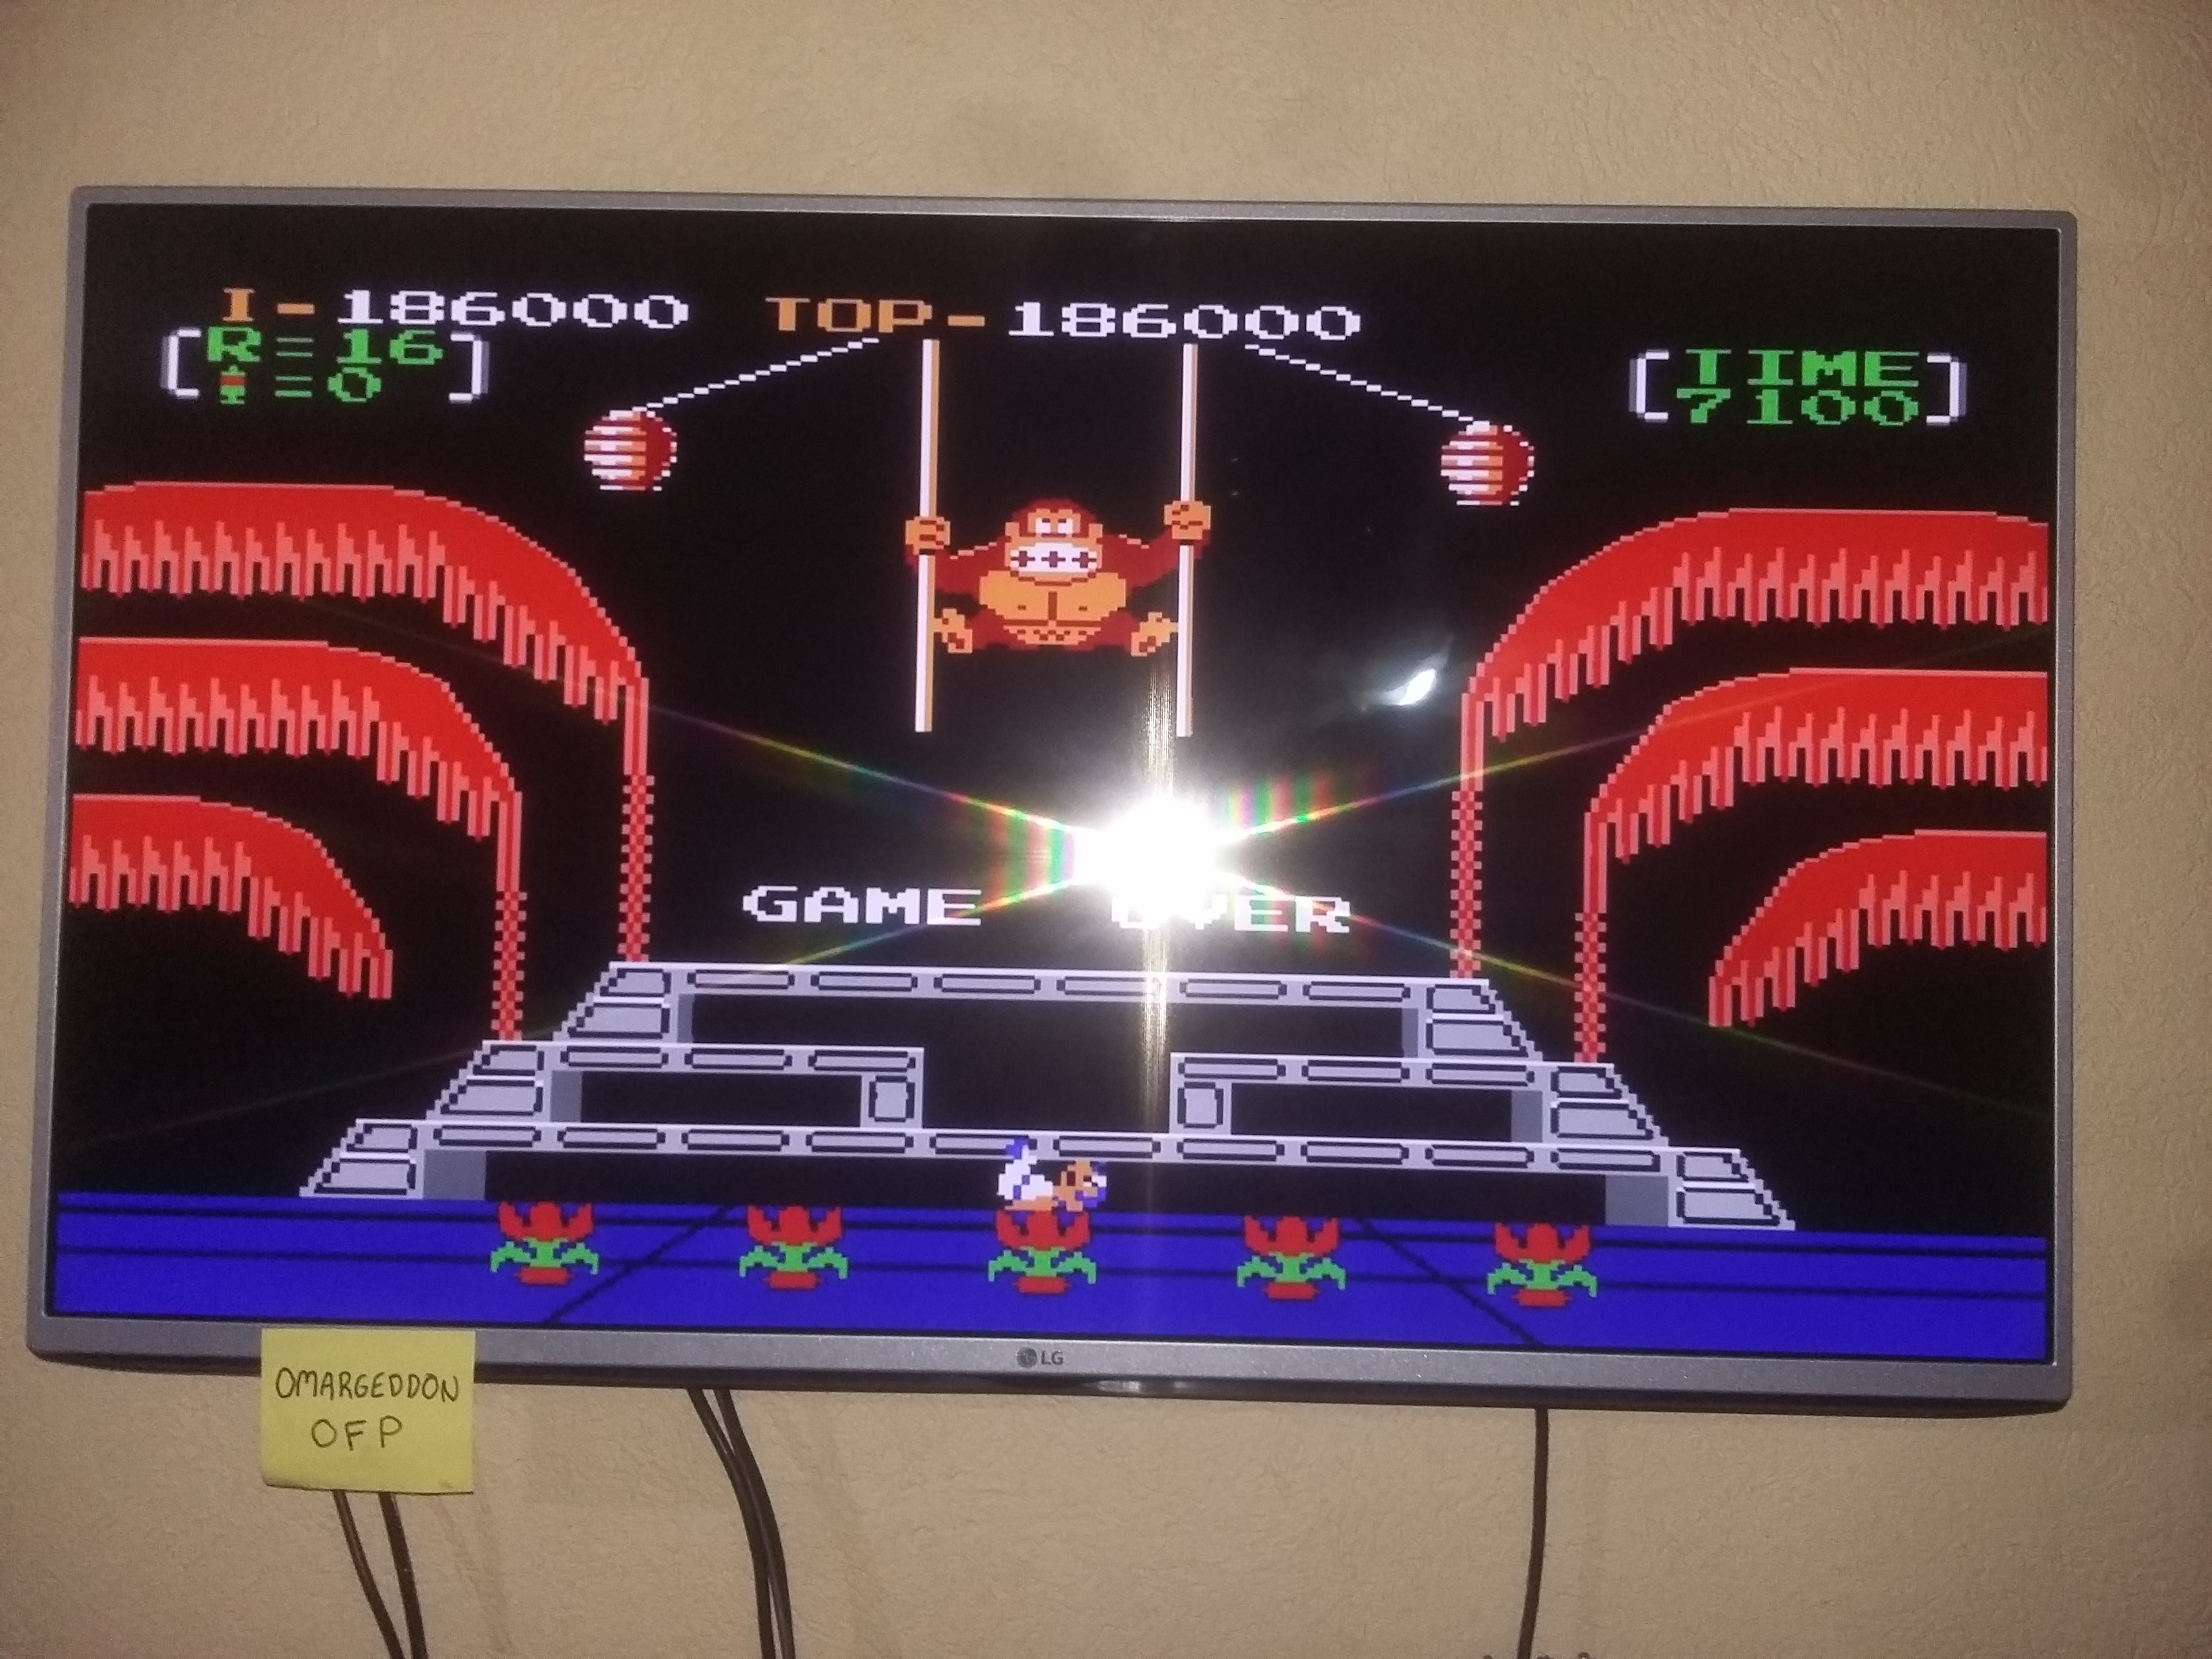 Donkey Kong 3: Game A 186,000 points